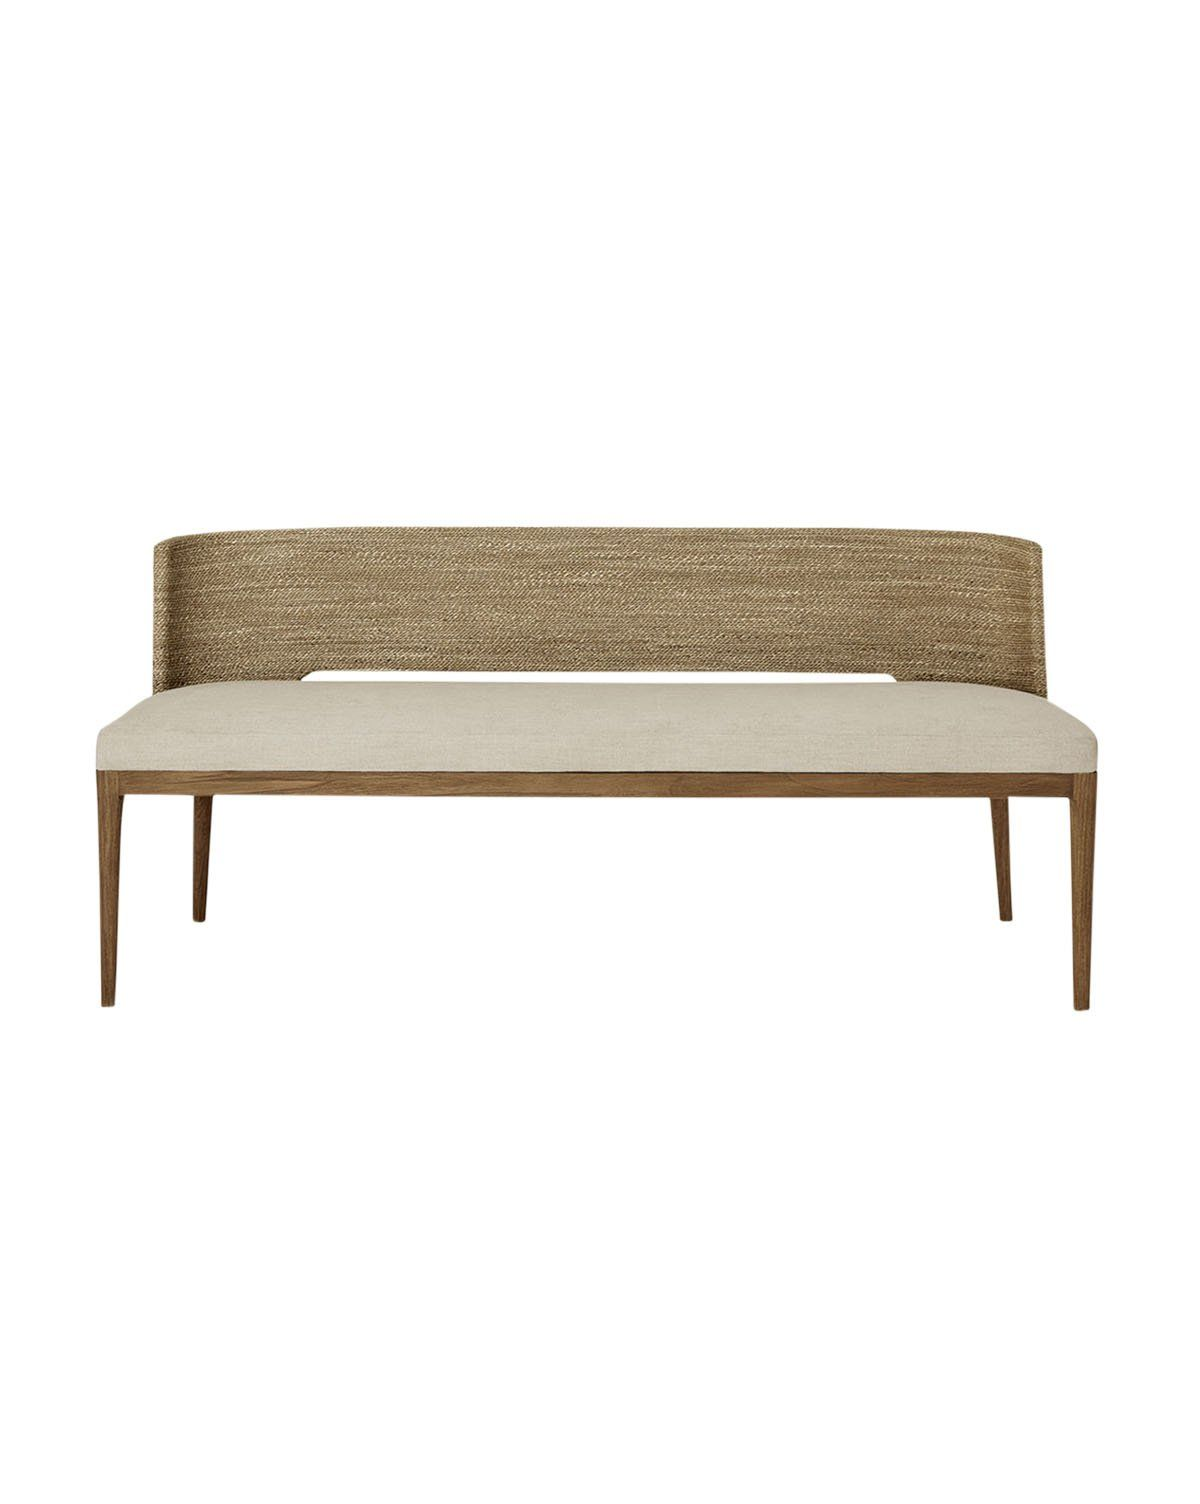 Ava Seagrass Bench In 2021 Seagrass Bench Modern Dining Bench Upholstered Dining Bench